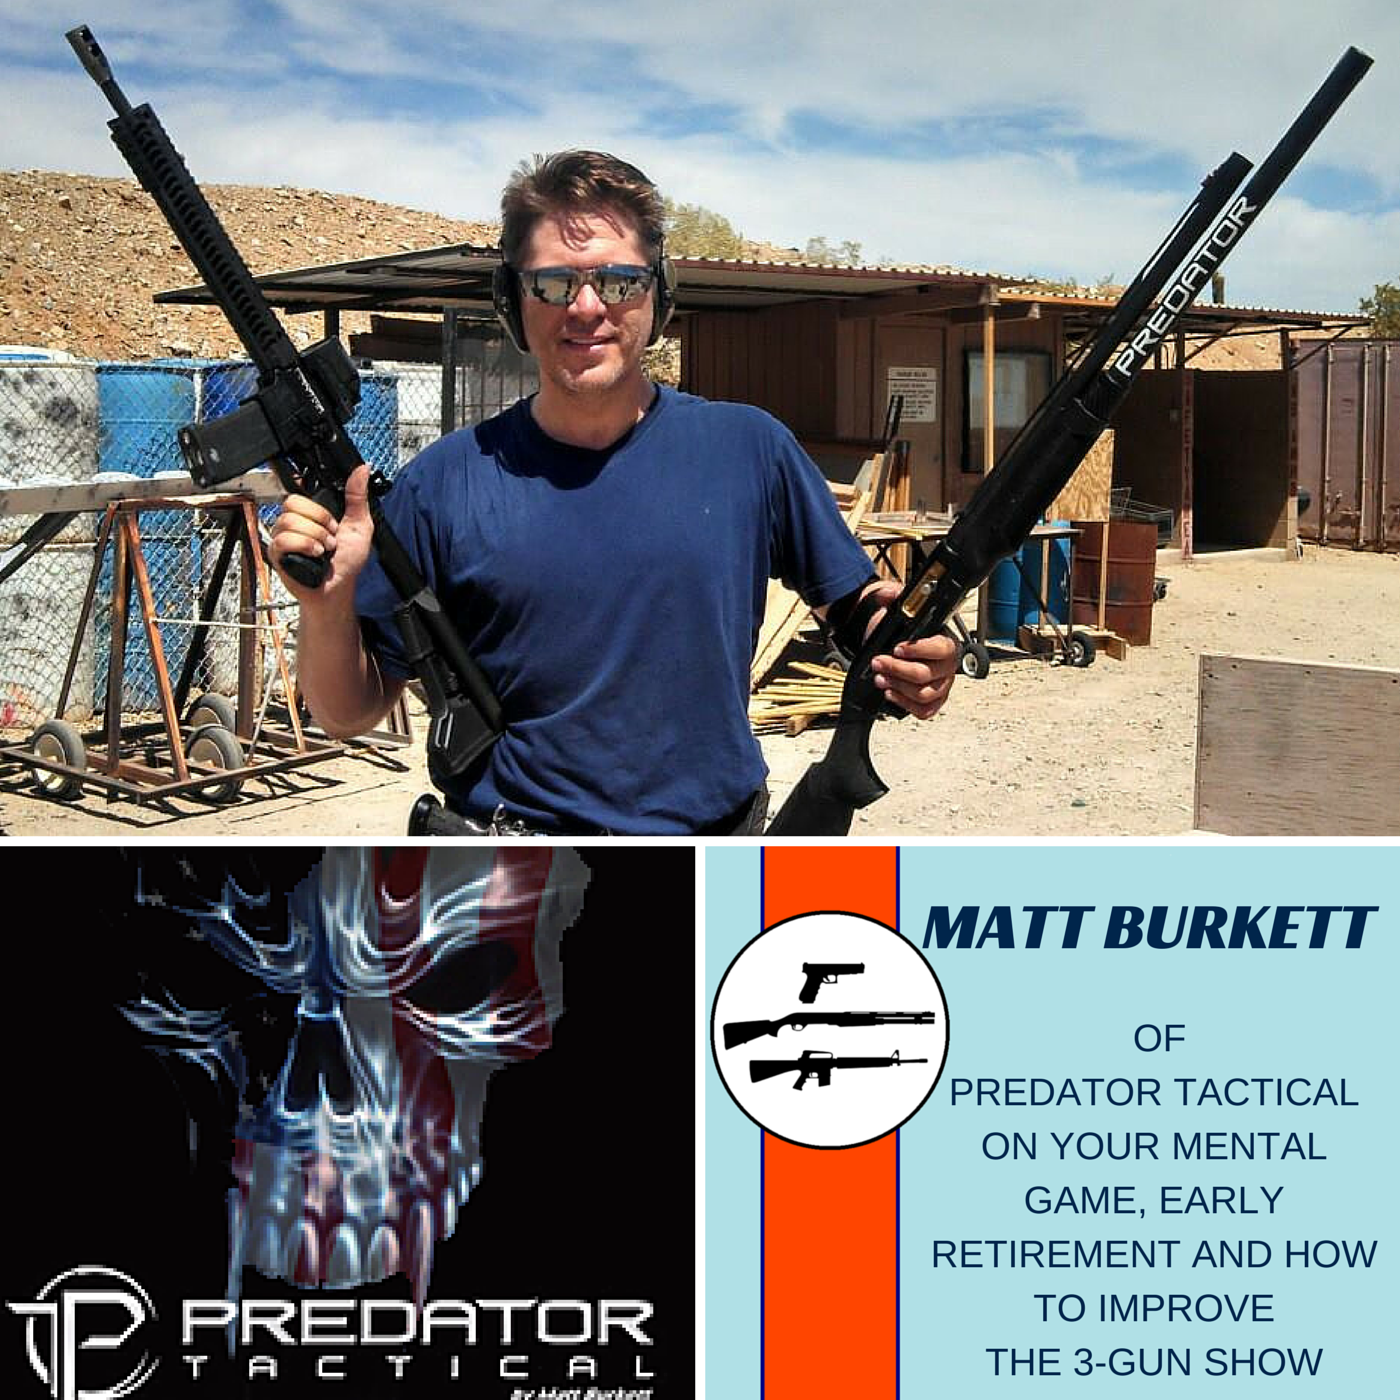 Matt Burkett of Predator Tactical showing off his 3-Guns